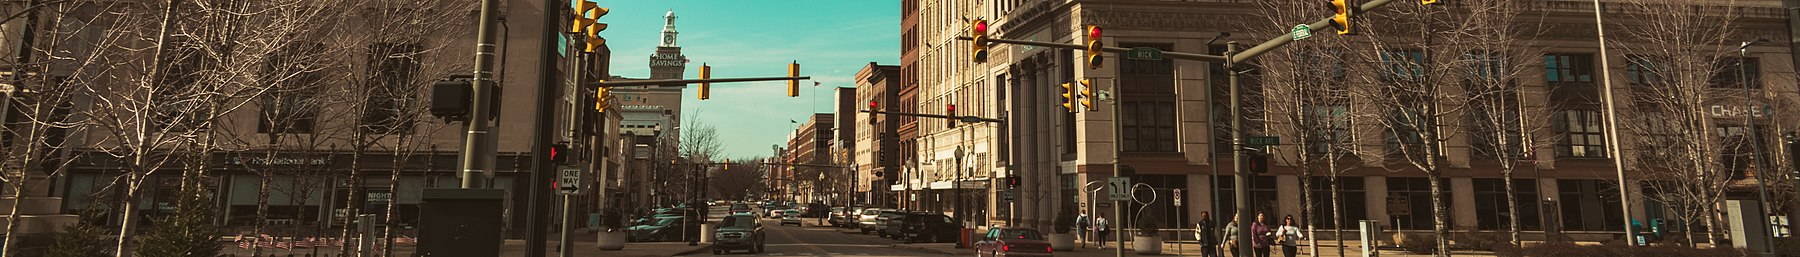 Youngstown-1 (Wikivoyage Banner).jpg